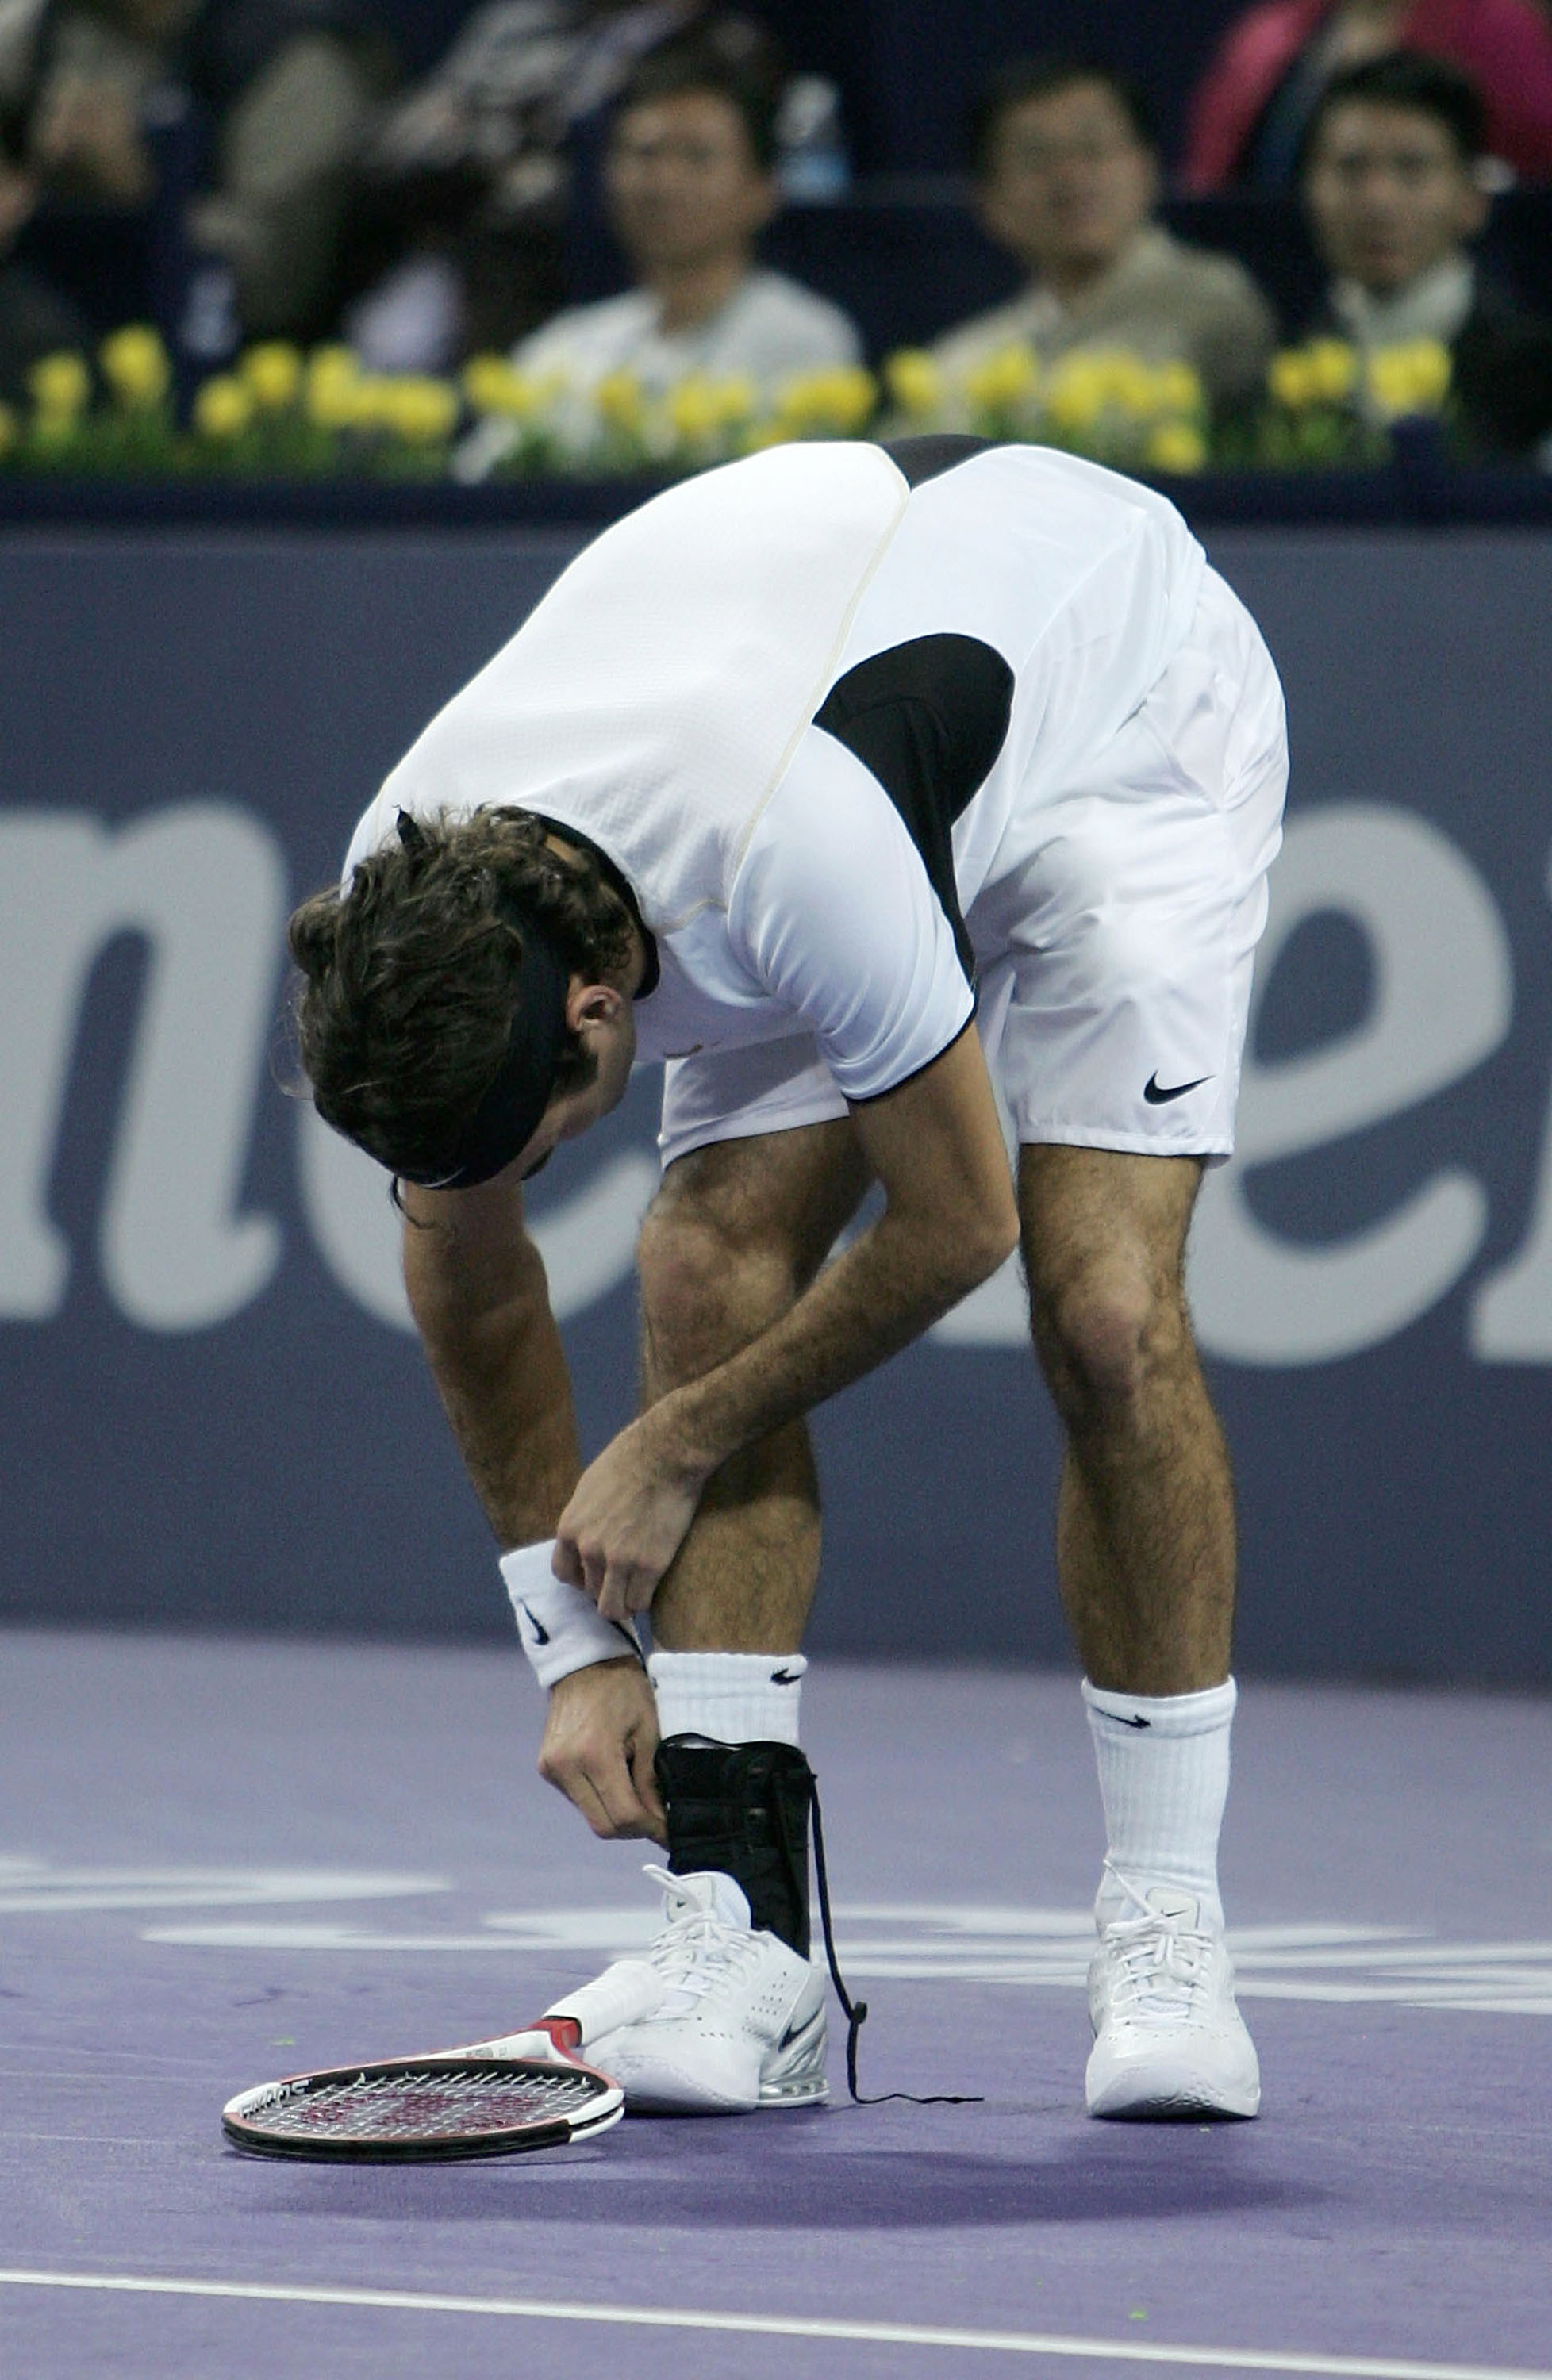 Federer of Switzerland re-straps his ankle during his five set match against Nalbandian.